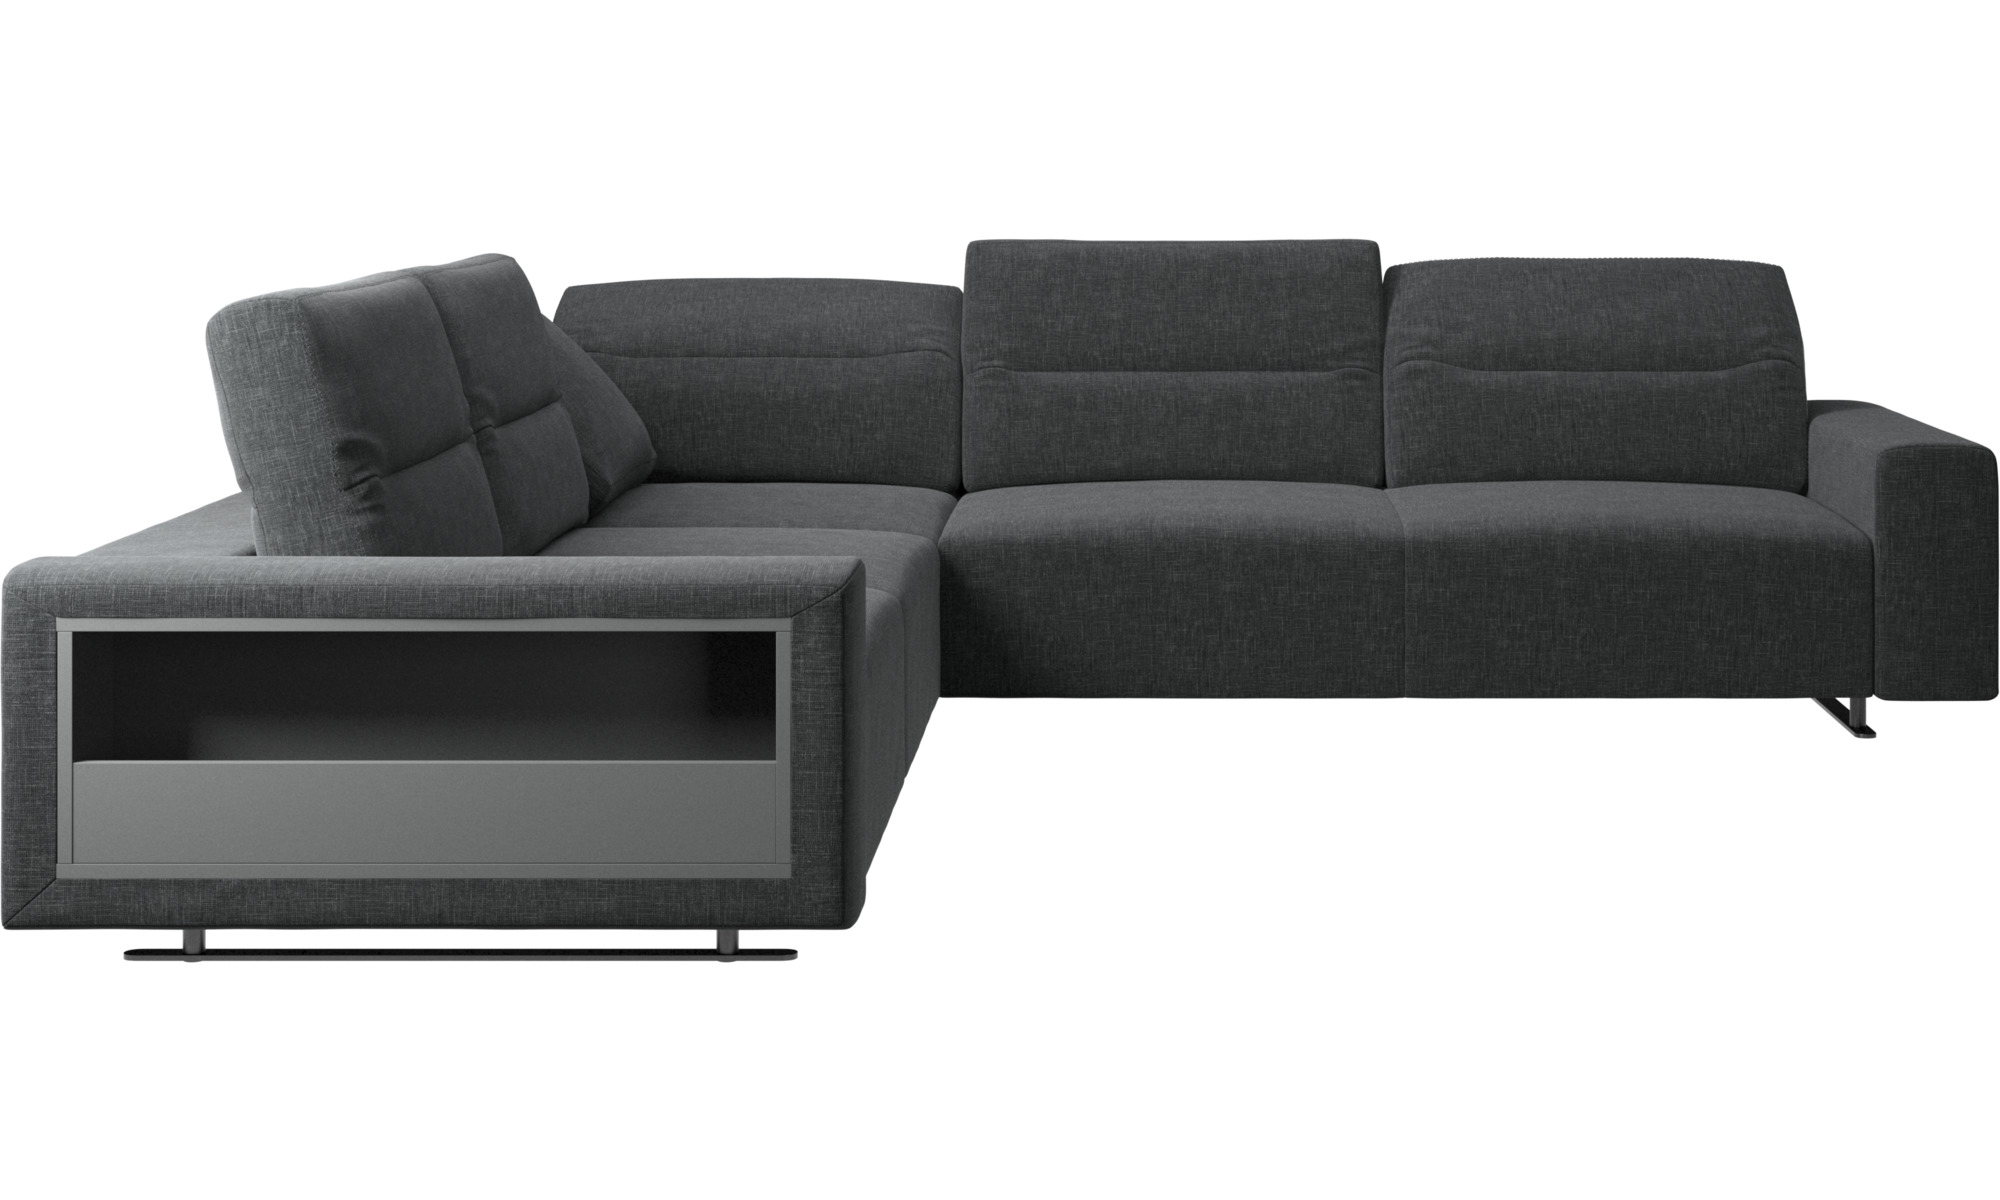 corner sofas hampton corner sofa with adjustable back. Black Bedroom Furniture Sets. Home Design Ideas